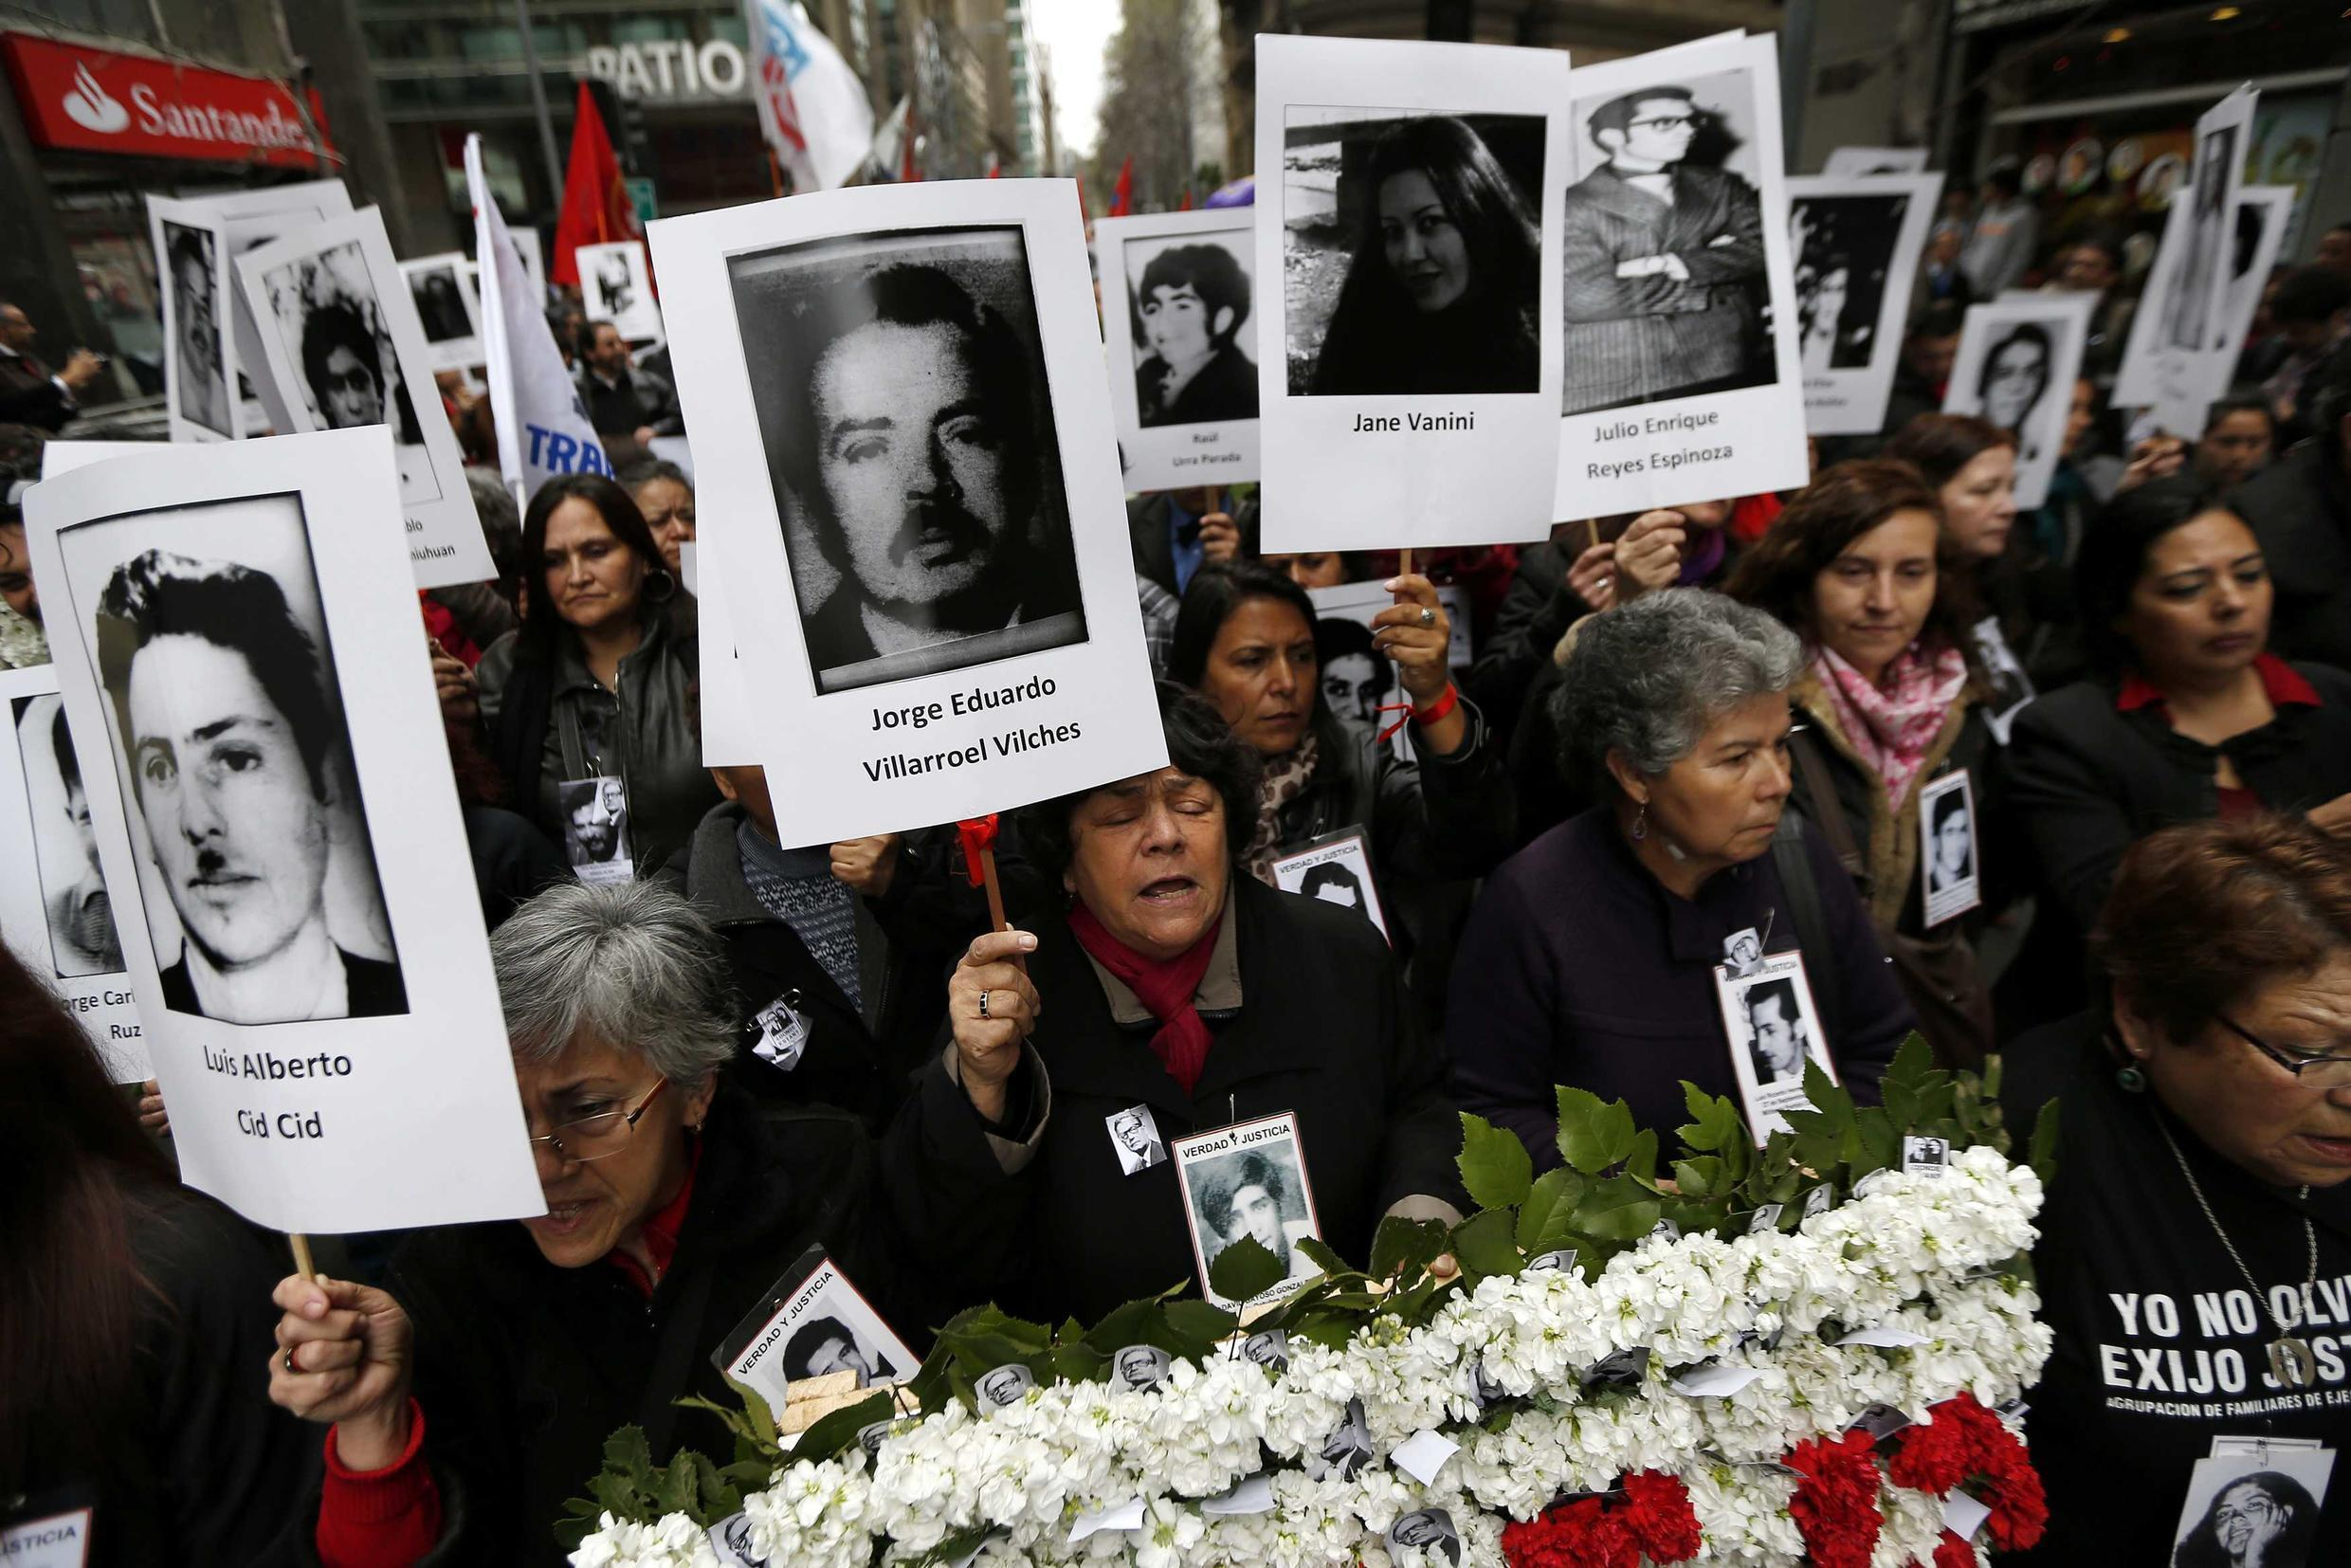 Demonstrators hold up images of their relatives, victims of human rights abuse during the Pinochet years, Santiago, 11 September, 2013